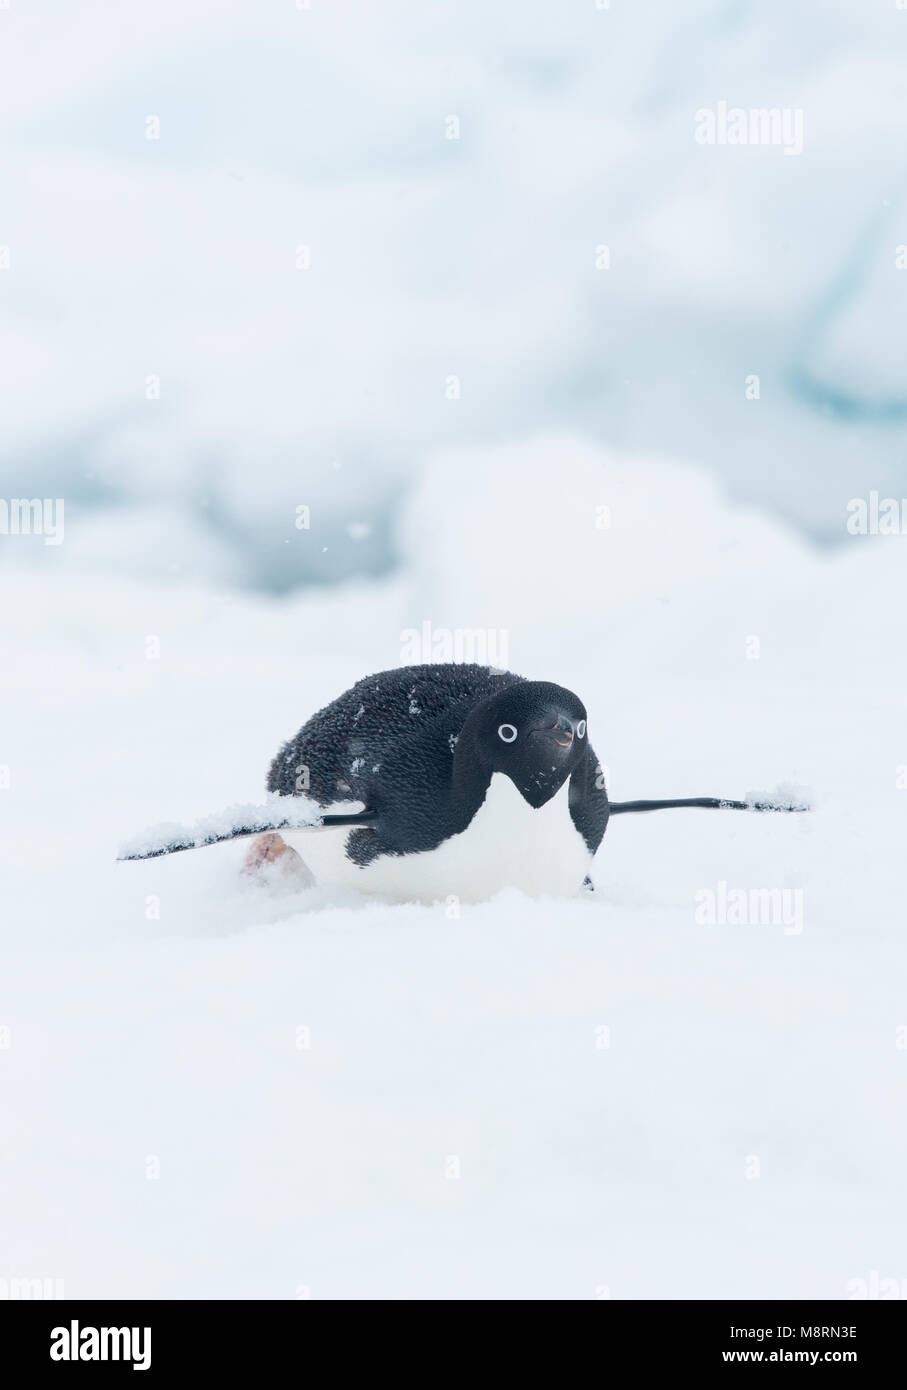 Snow falls on top of an Adelie penguin as it slides along the top of an iceberg on its belly, also known as tobogganing. - Stock Image